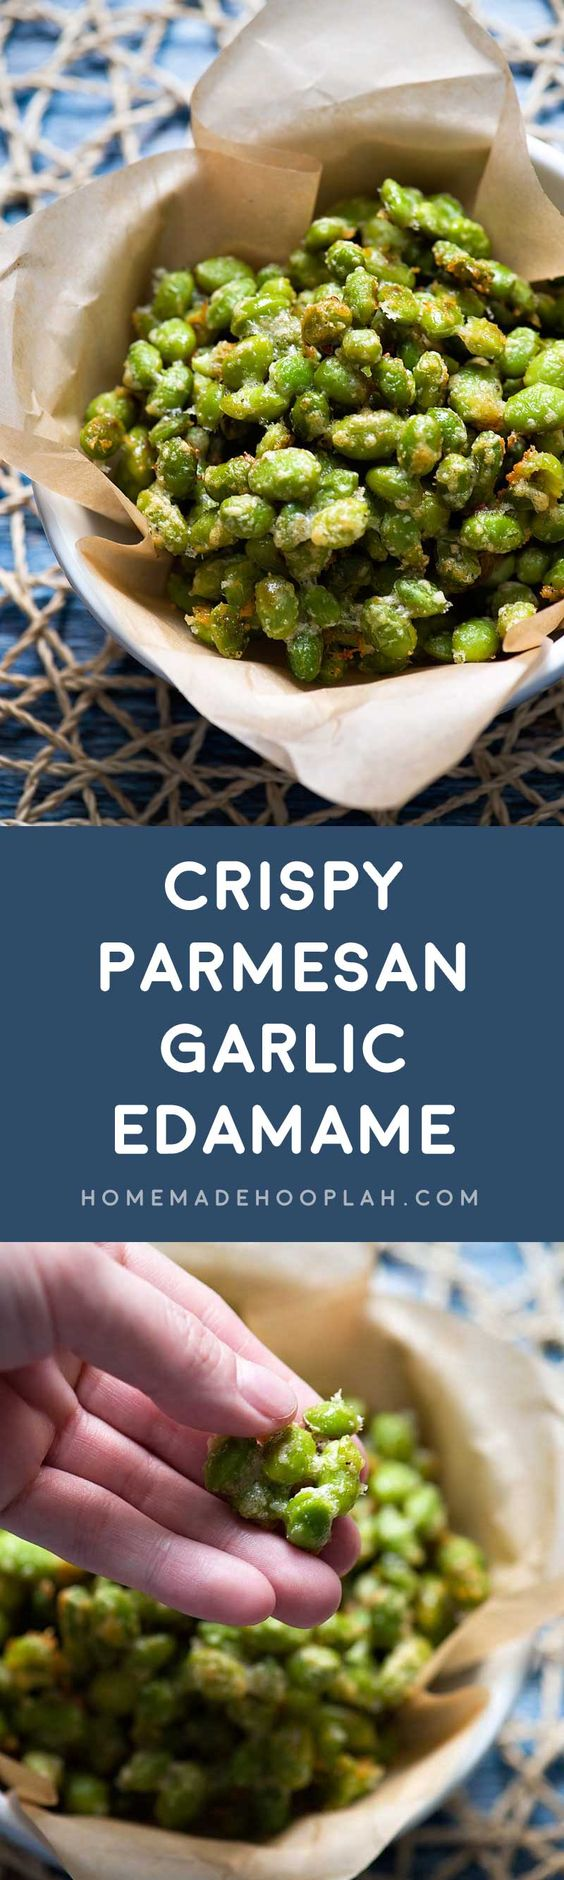 edamame snack recipes - photo #46